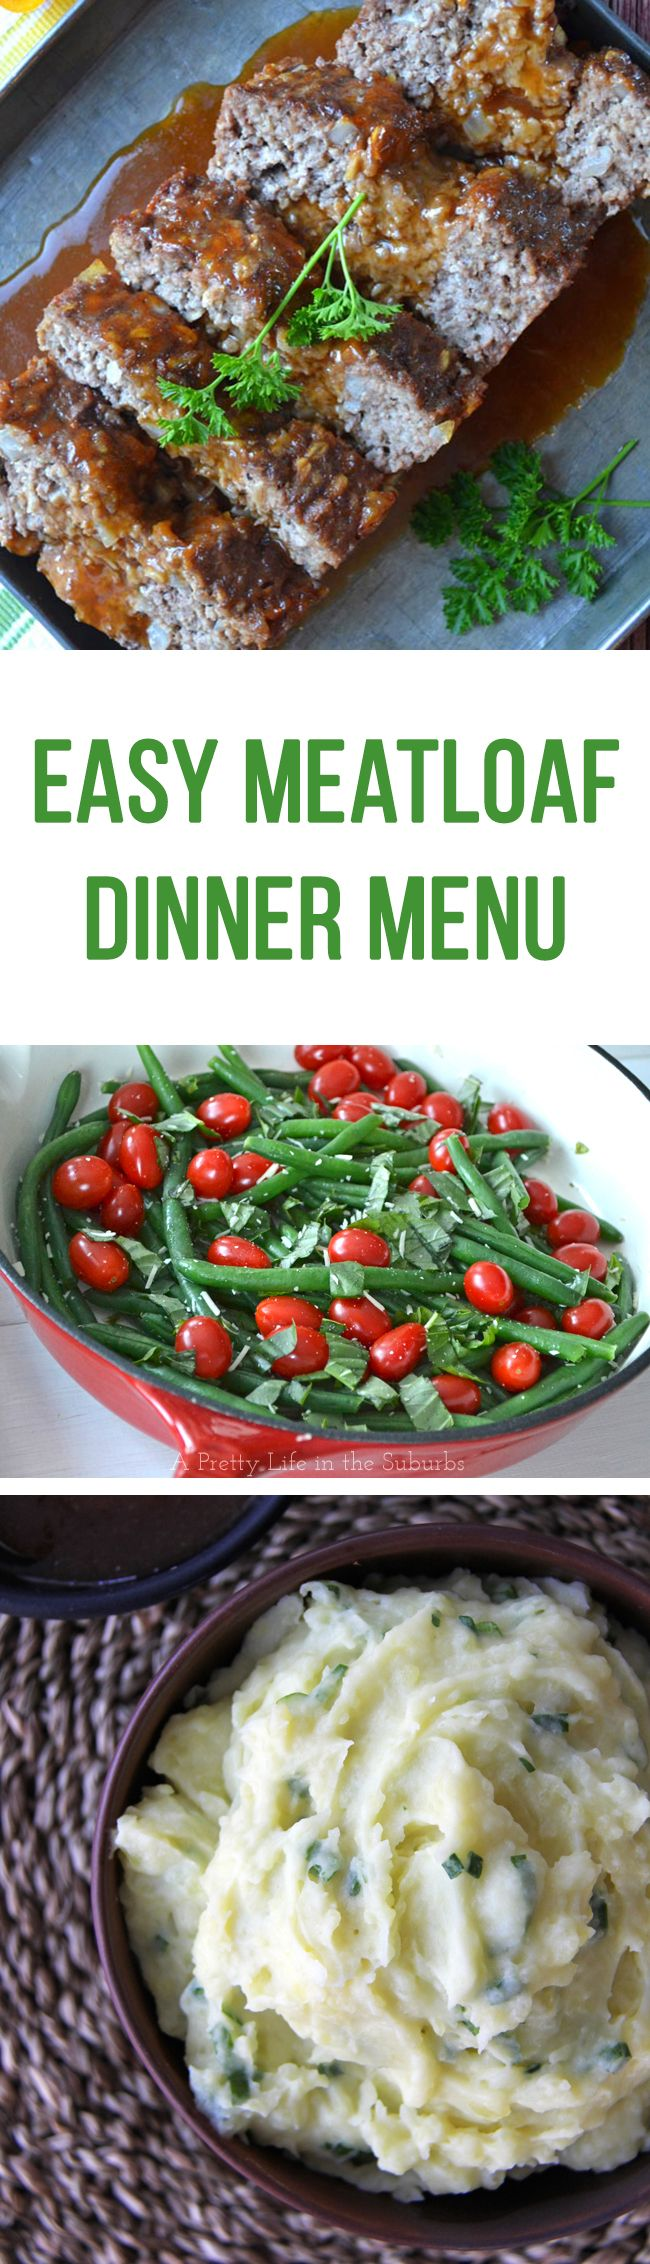 Recipe ideas for an Easy Meatloaf Dinner Menu, including a